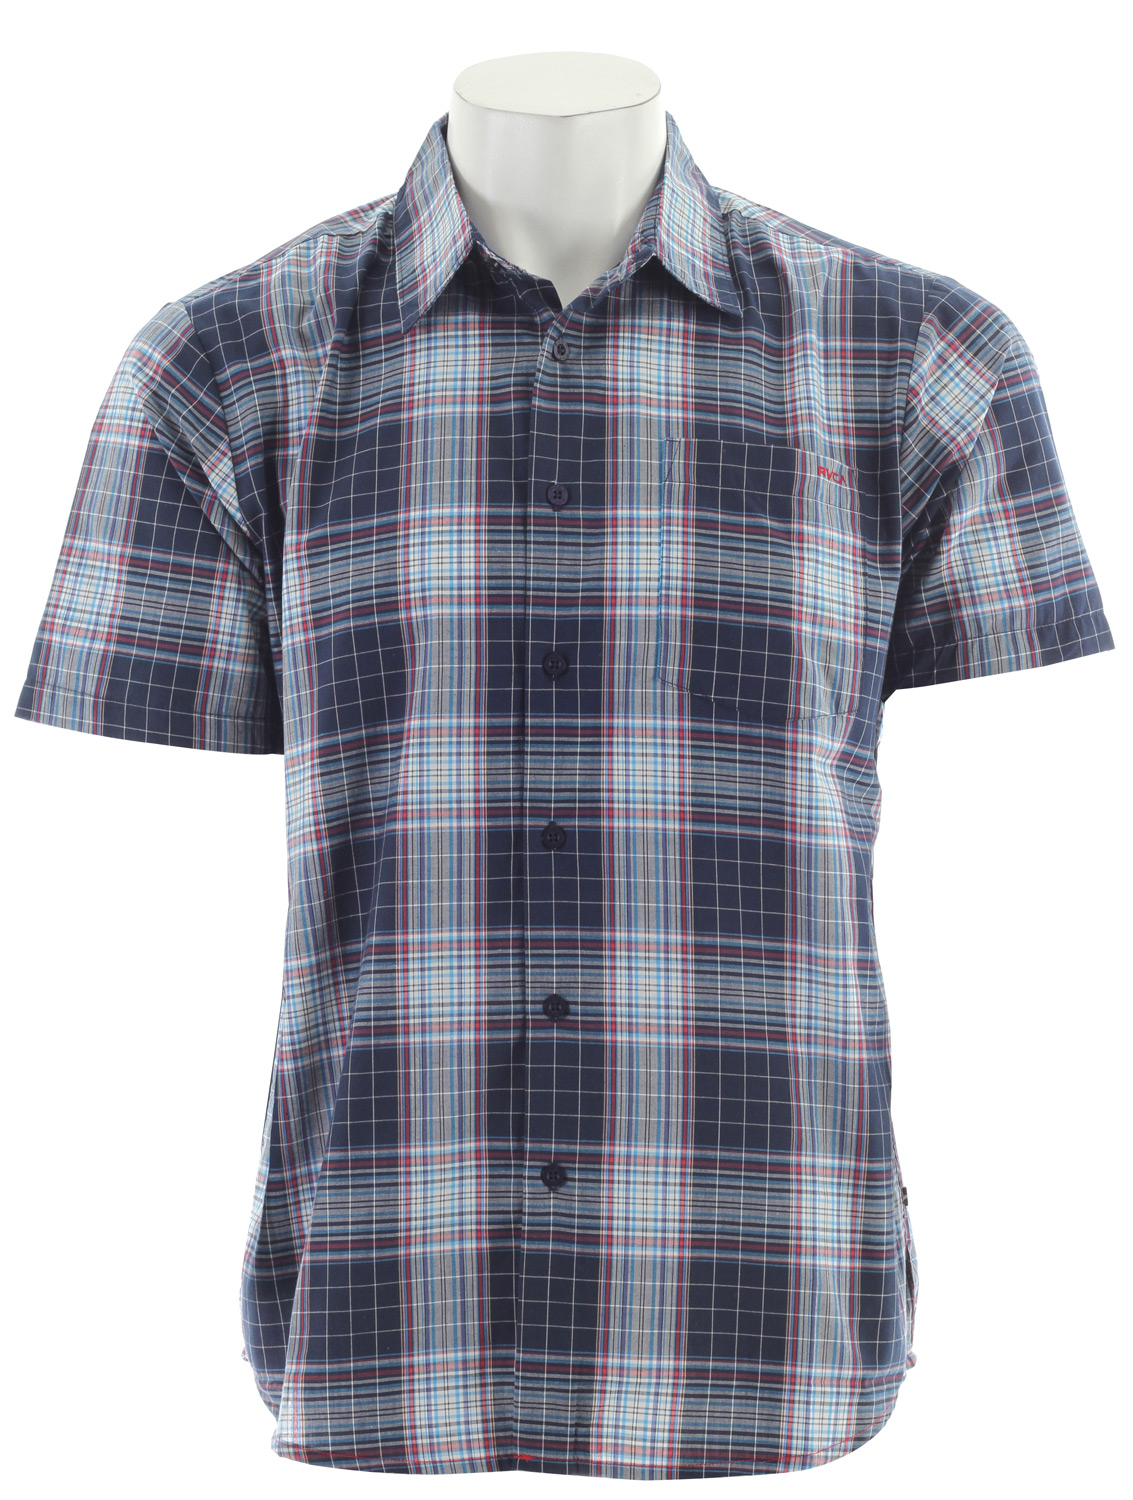 Key Features of the RVCA Spectrum Plaid S/S Shirt: Regular Fit- Cotton/Polyester Yarn-Dyed Plaid Short Sleeve Button Down Shirt Patch Pocket At Left Chest RVCA Embroidery At Front Left Pocket VA Flag Label At Bottom Left Side - $28.95